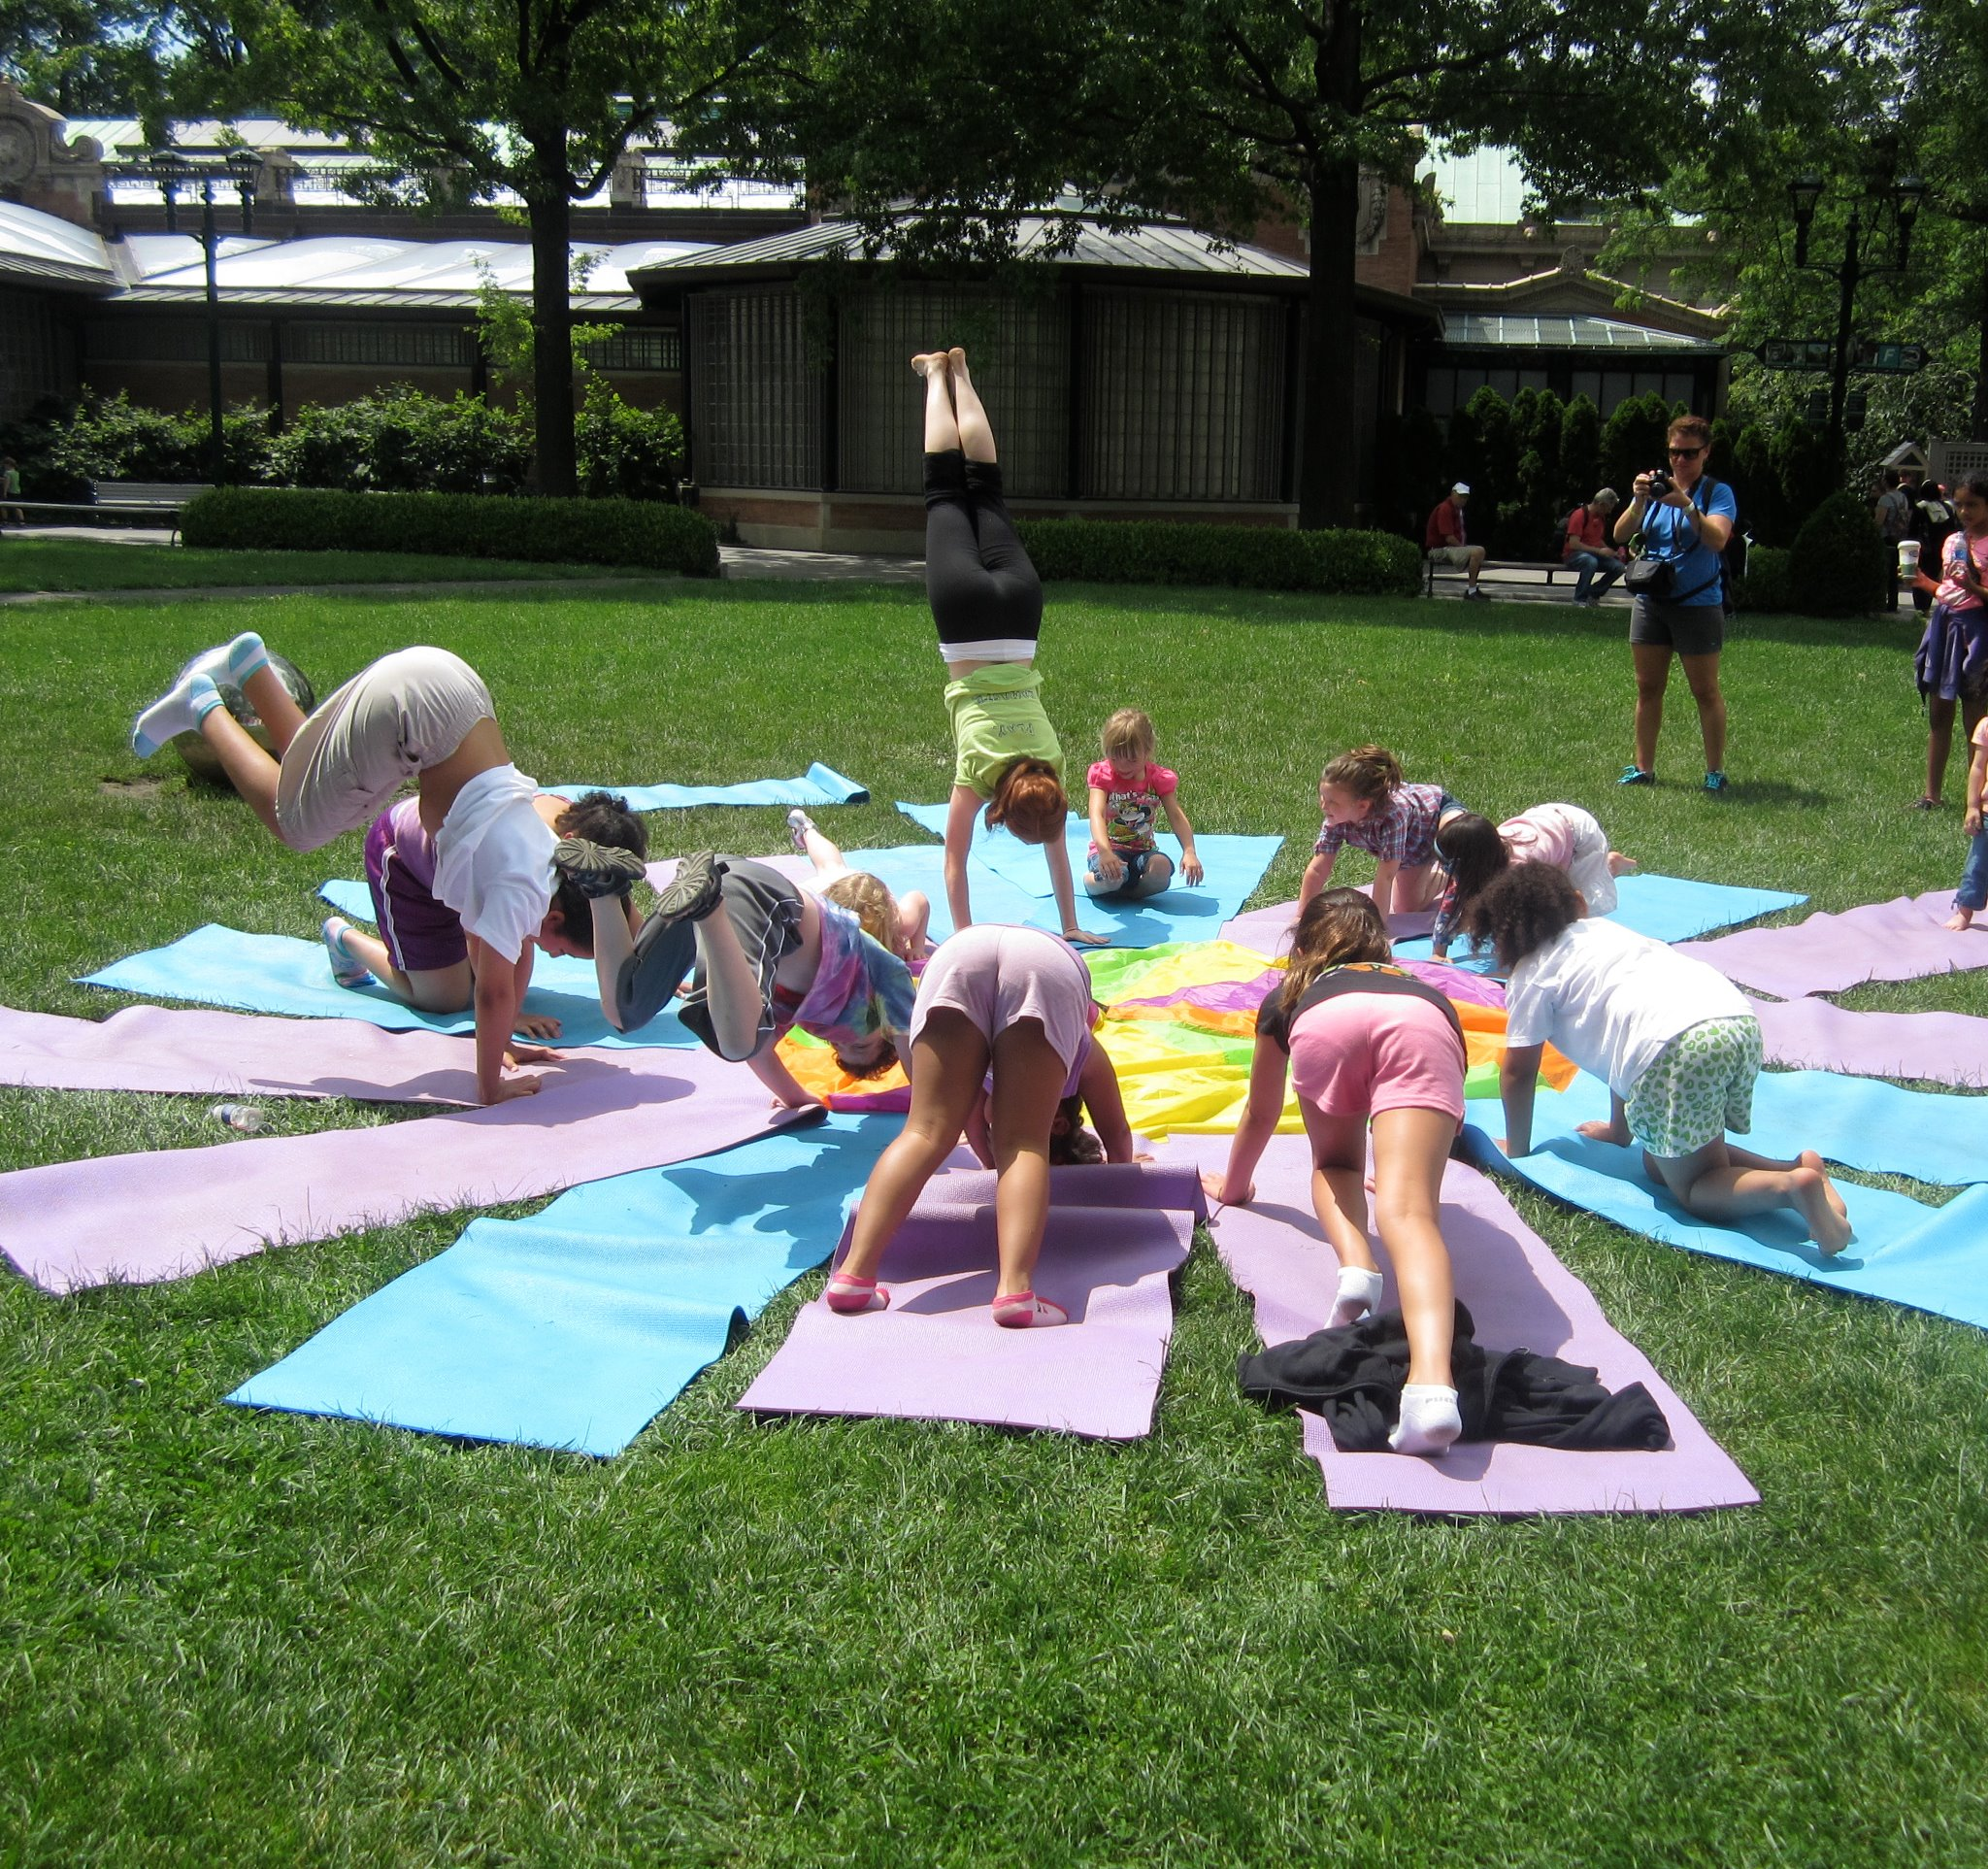 Lil Yogi's NYC Releases Summer Schedule for 2013 of ...